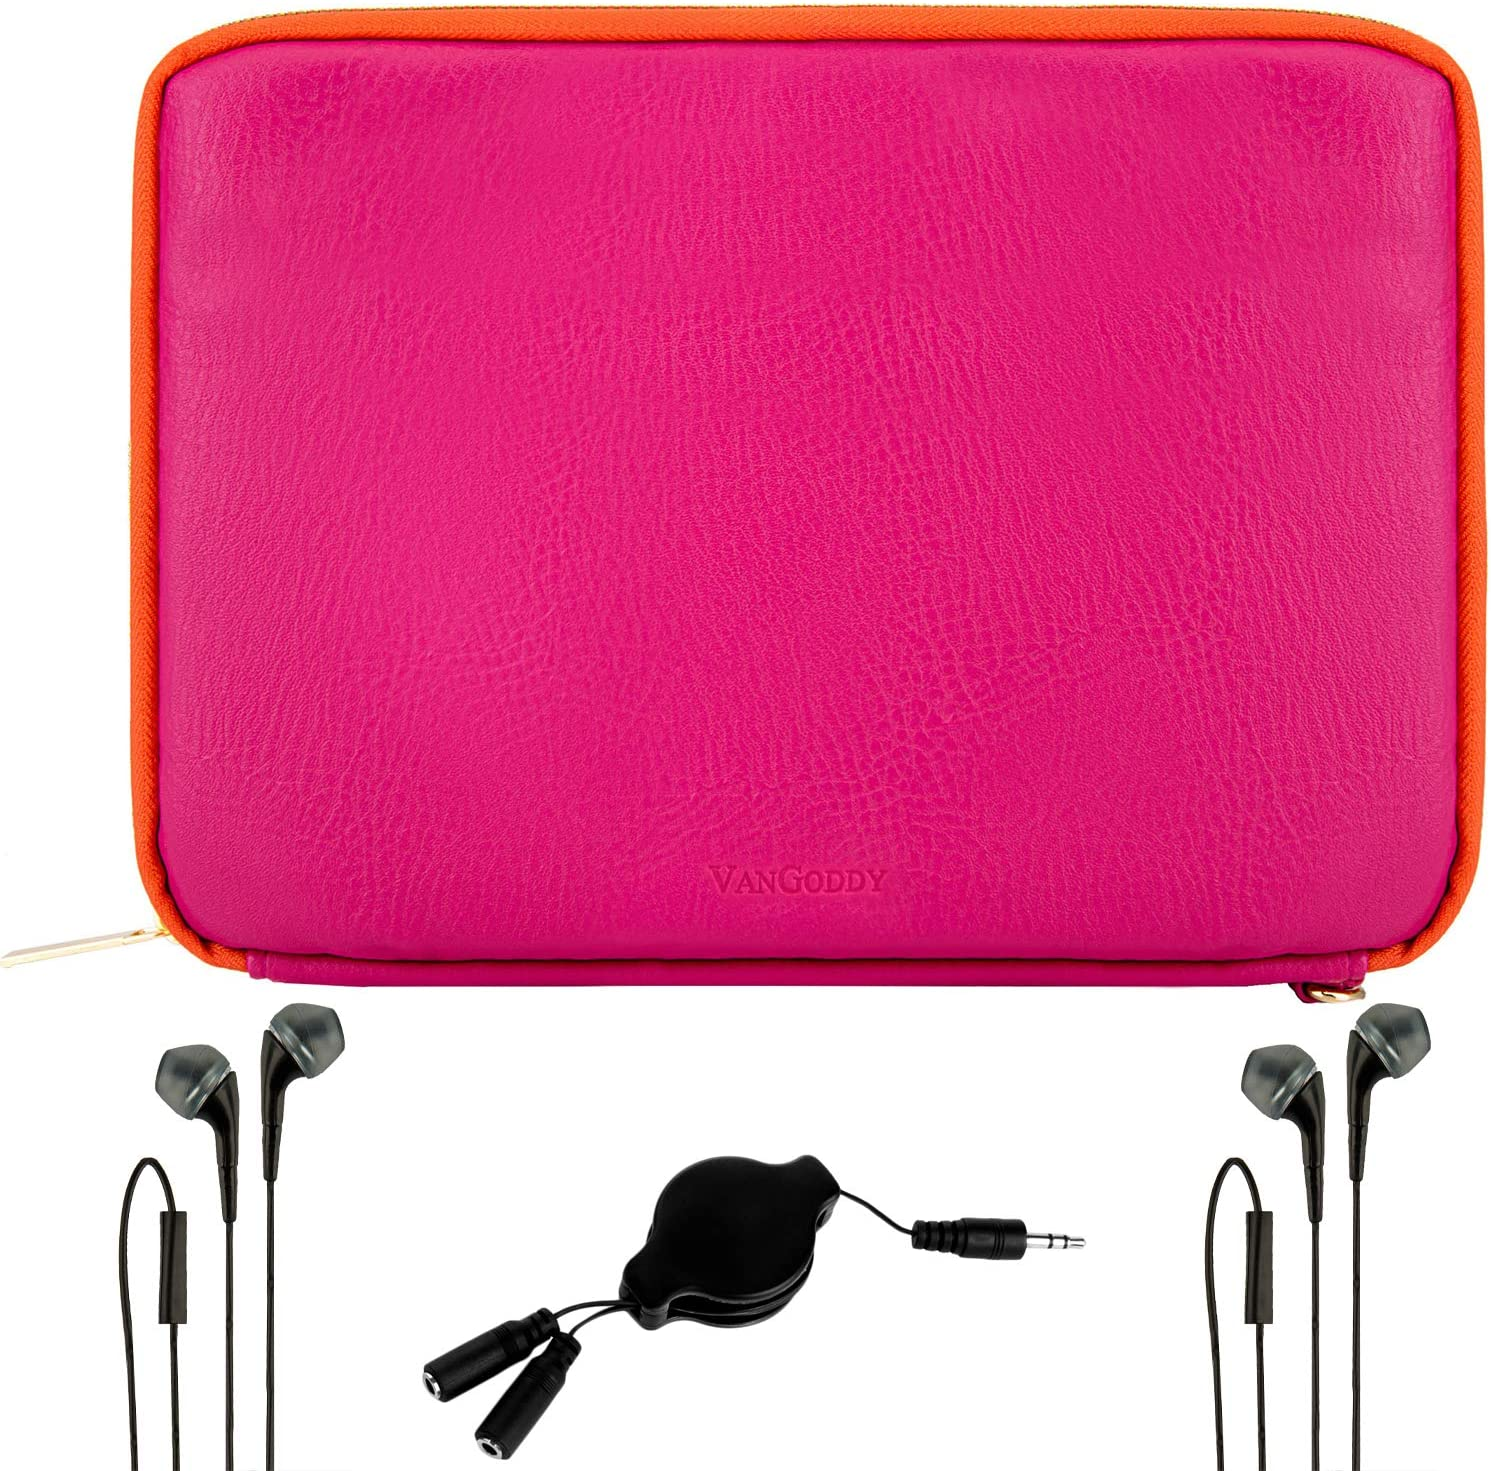 VanGoddy 2 Sets of Earbuds, Splitter and Magenta Orange Tablet Sleeve Case 10-inch Compatible with DHgate Fire 10 HD